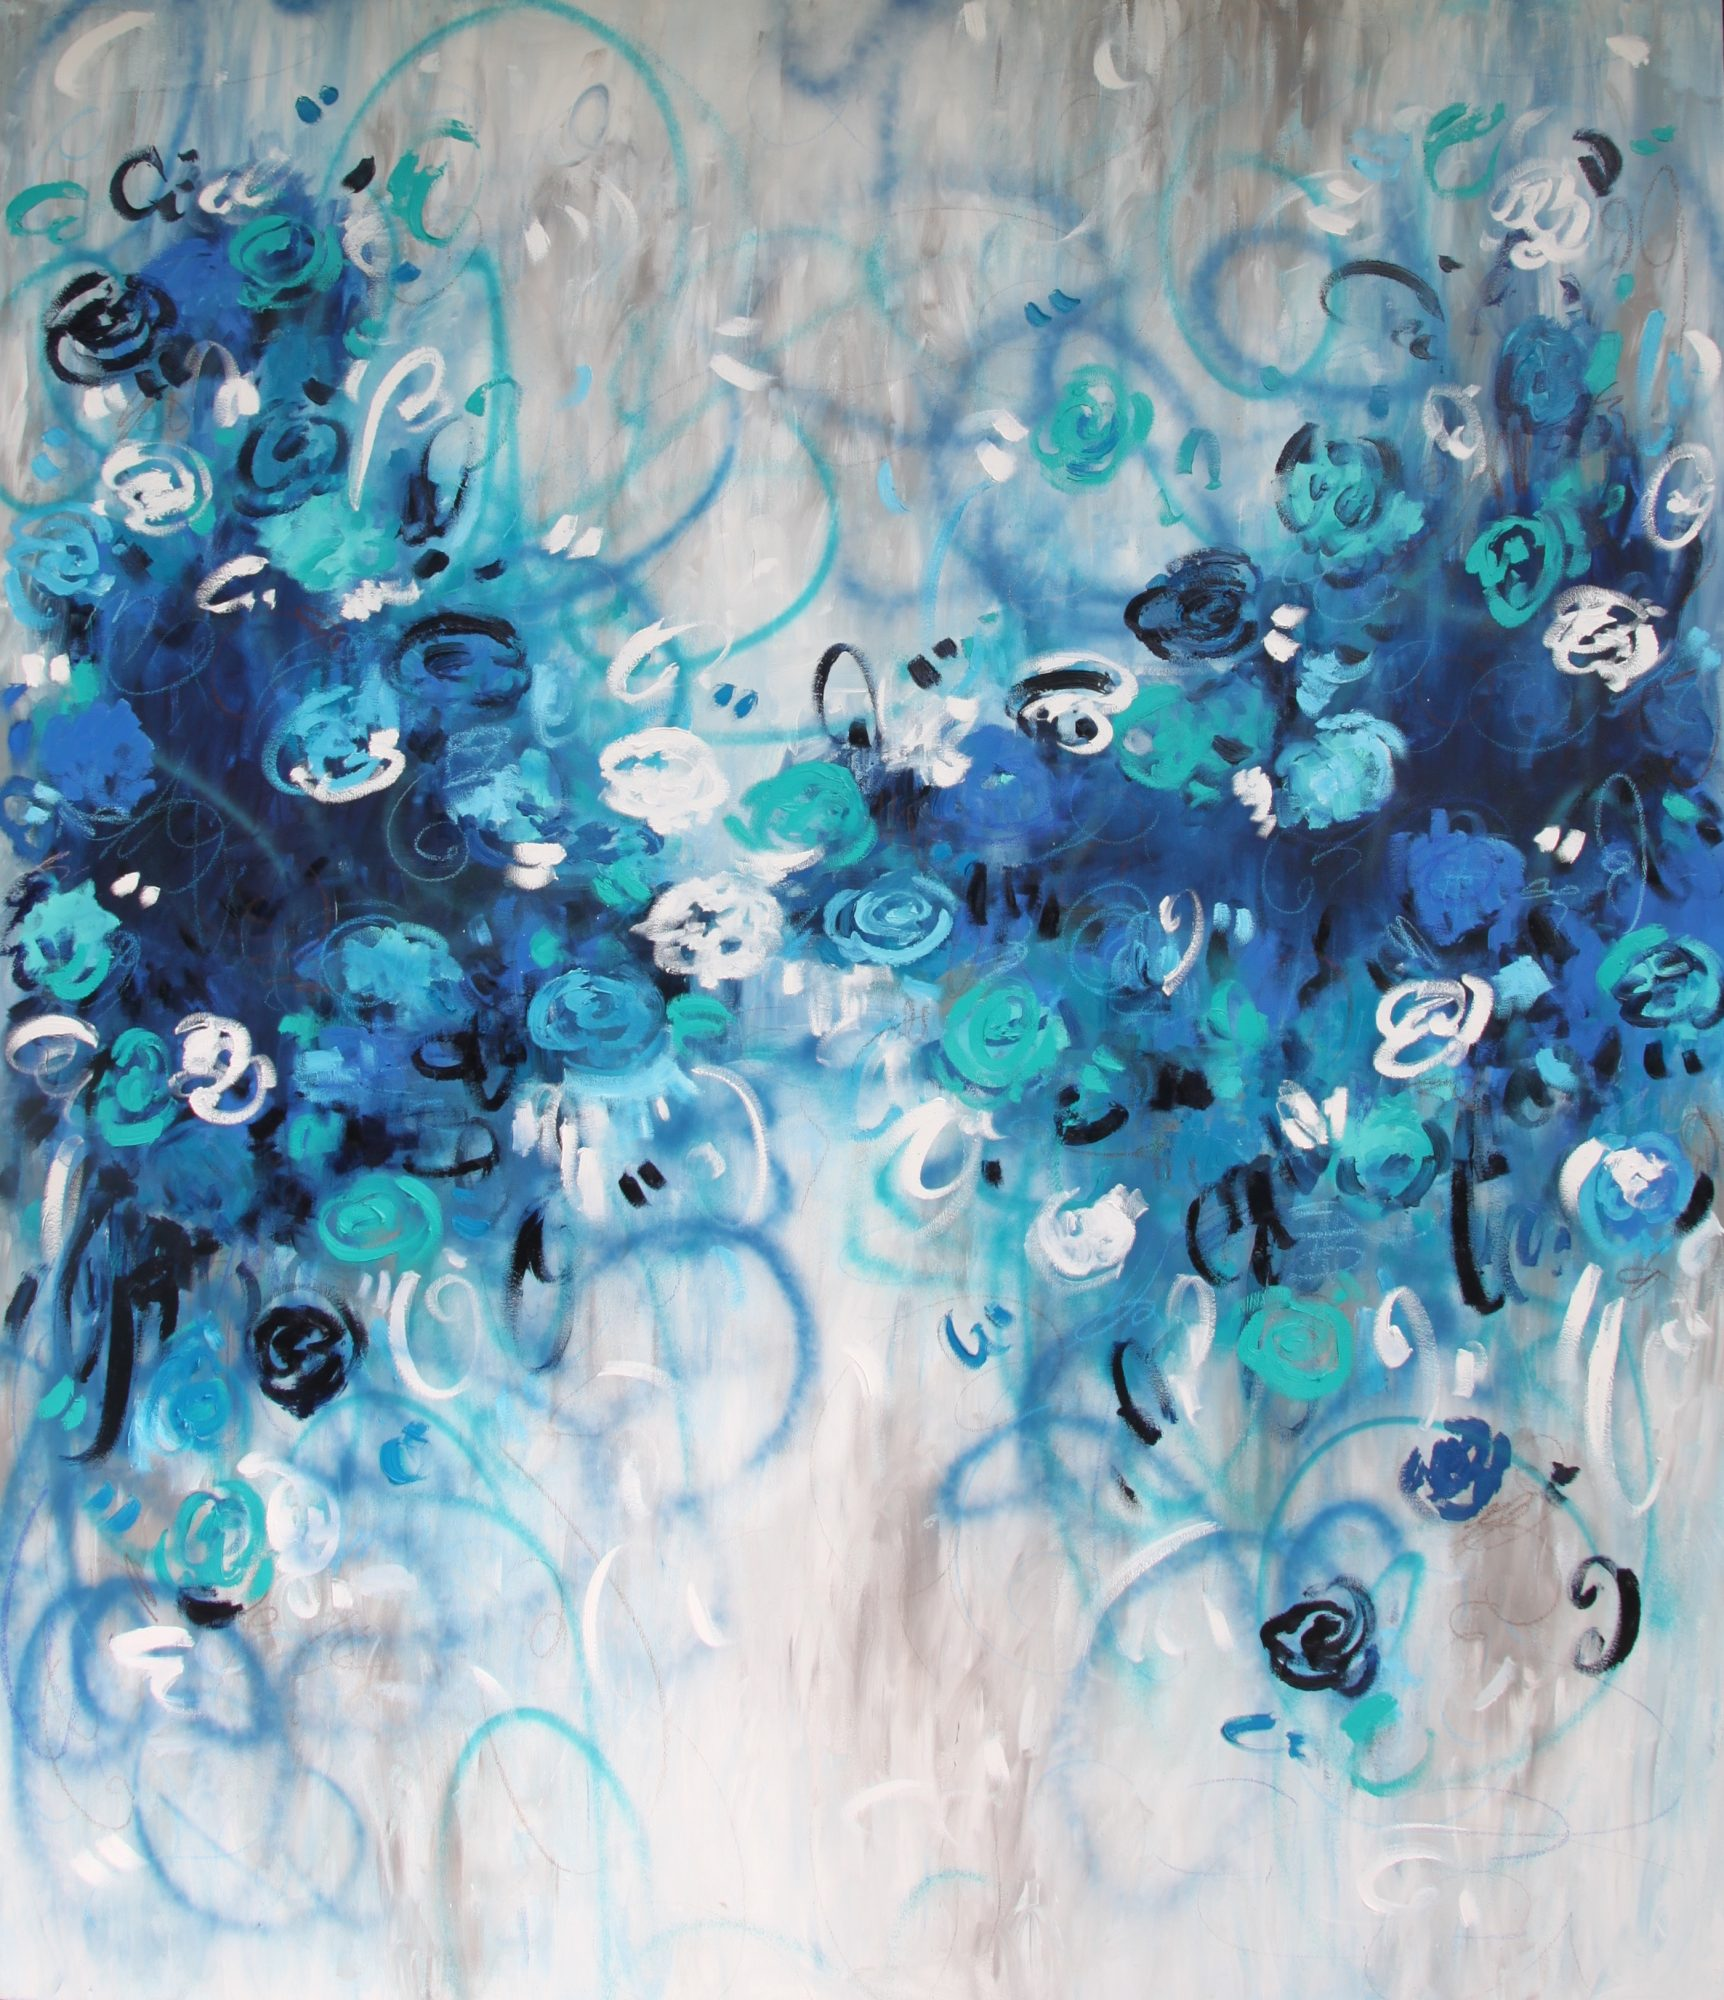 belinda-nadwie-art-abstract-artist-sydney-blissful love 1